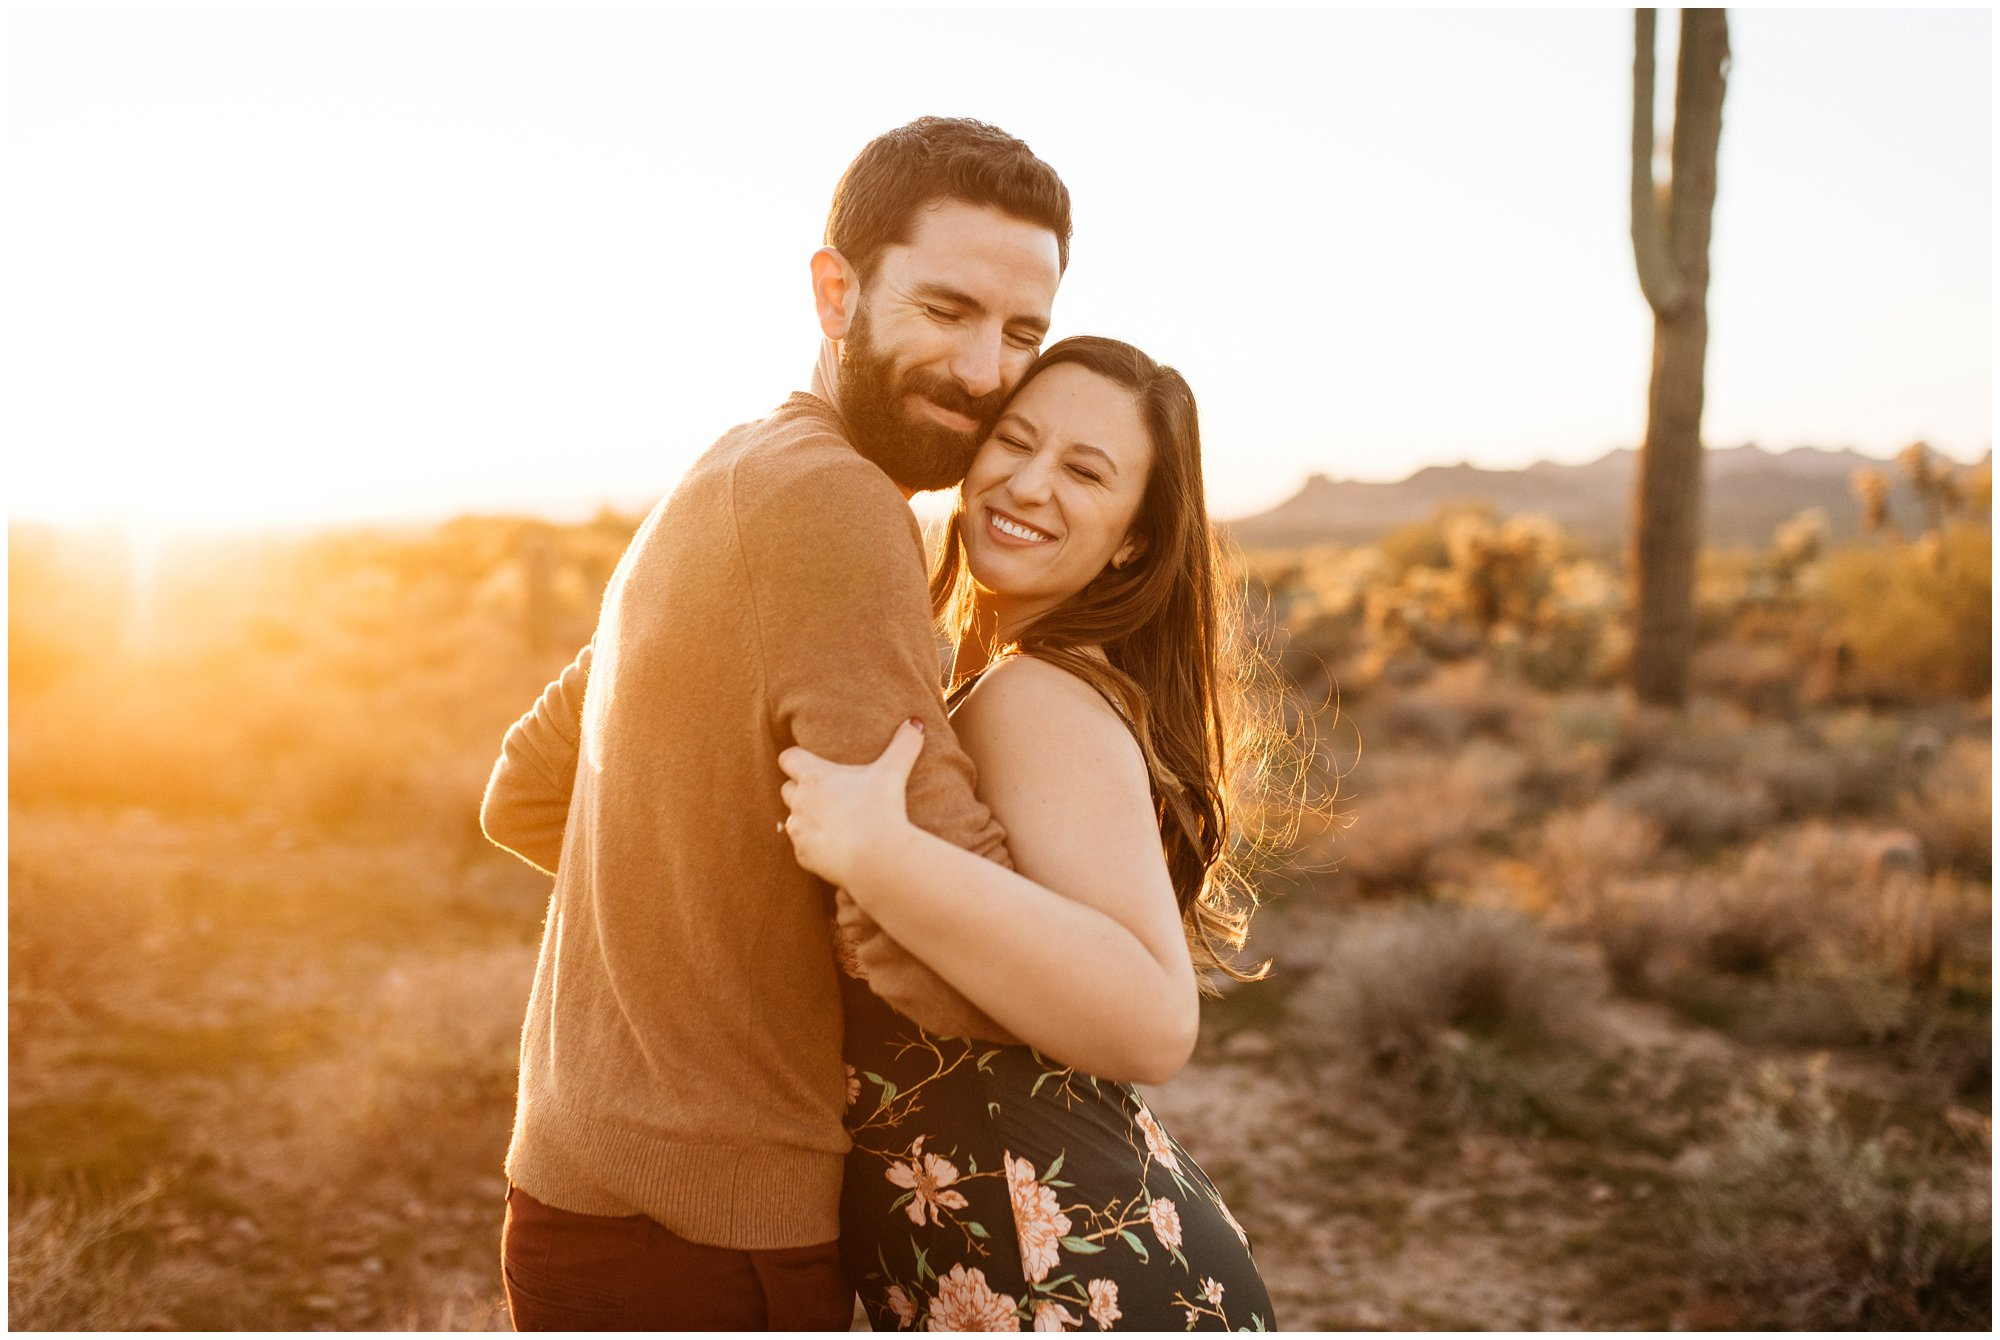 Arizona Desert Engagement Session - Megan + Geno - Ashtyn Nicole Photo_0027.jpg